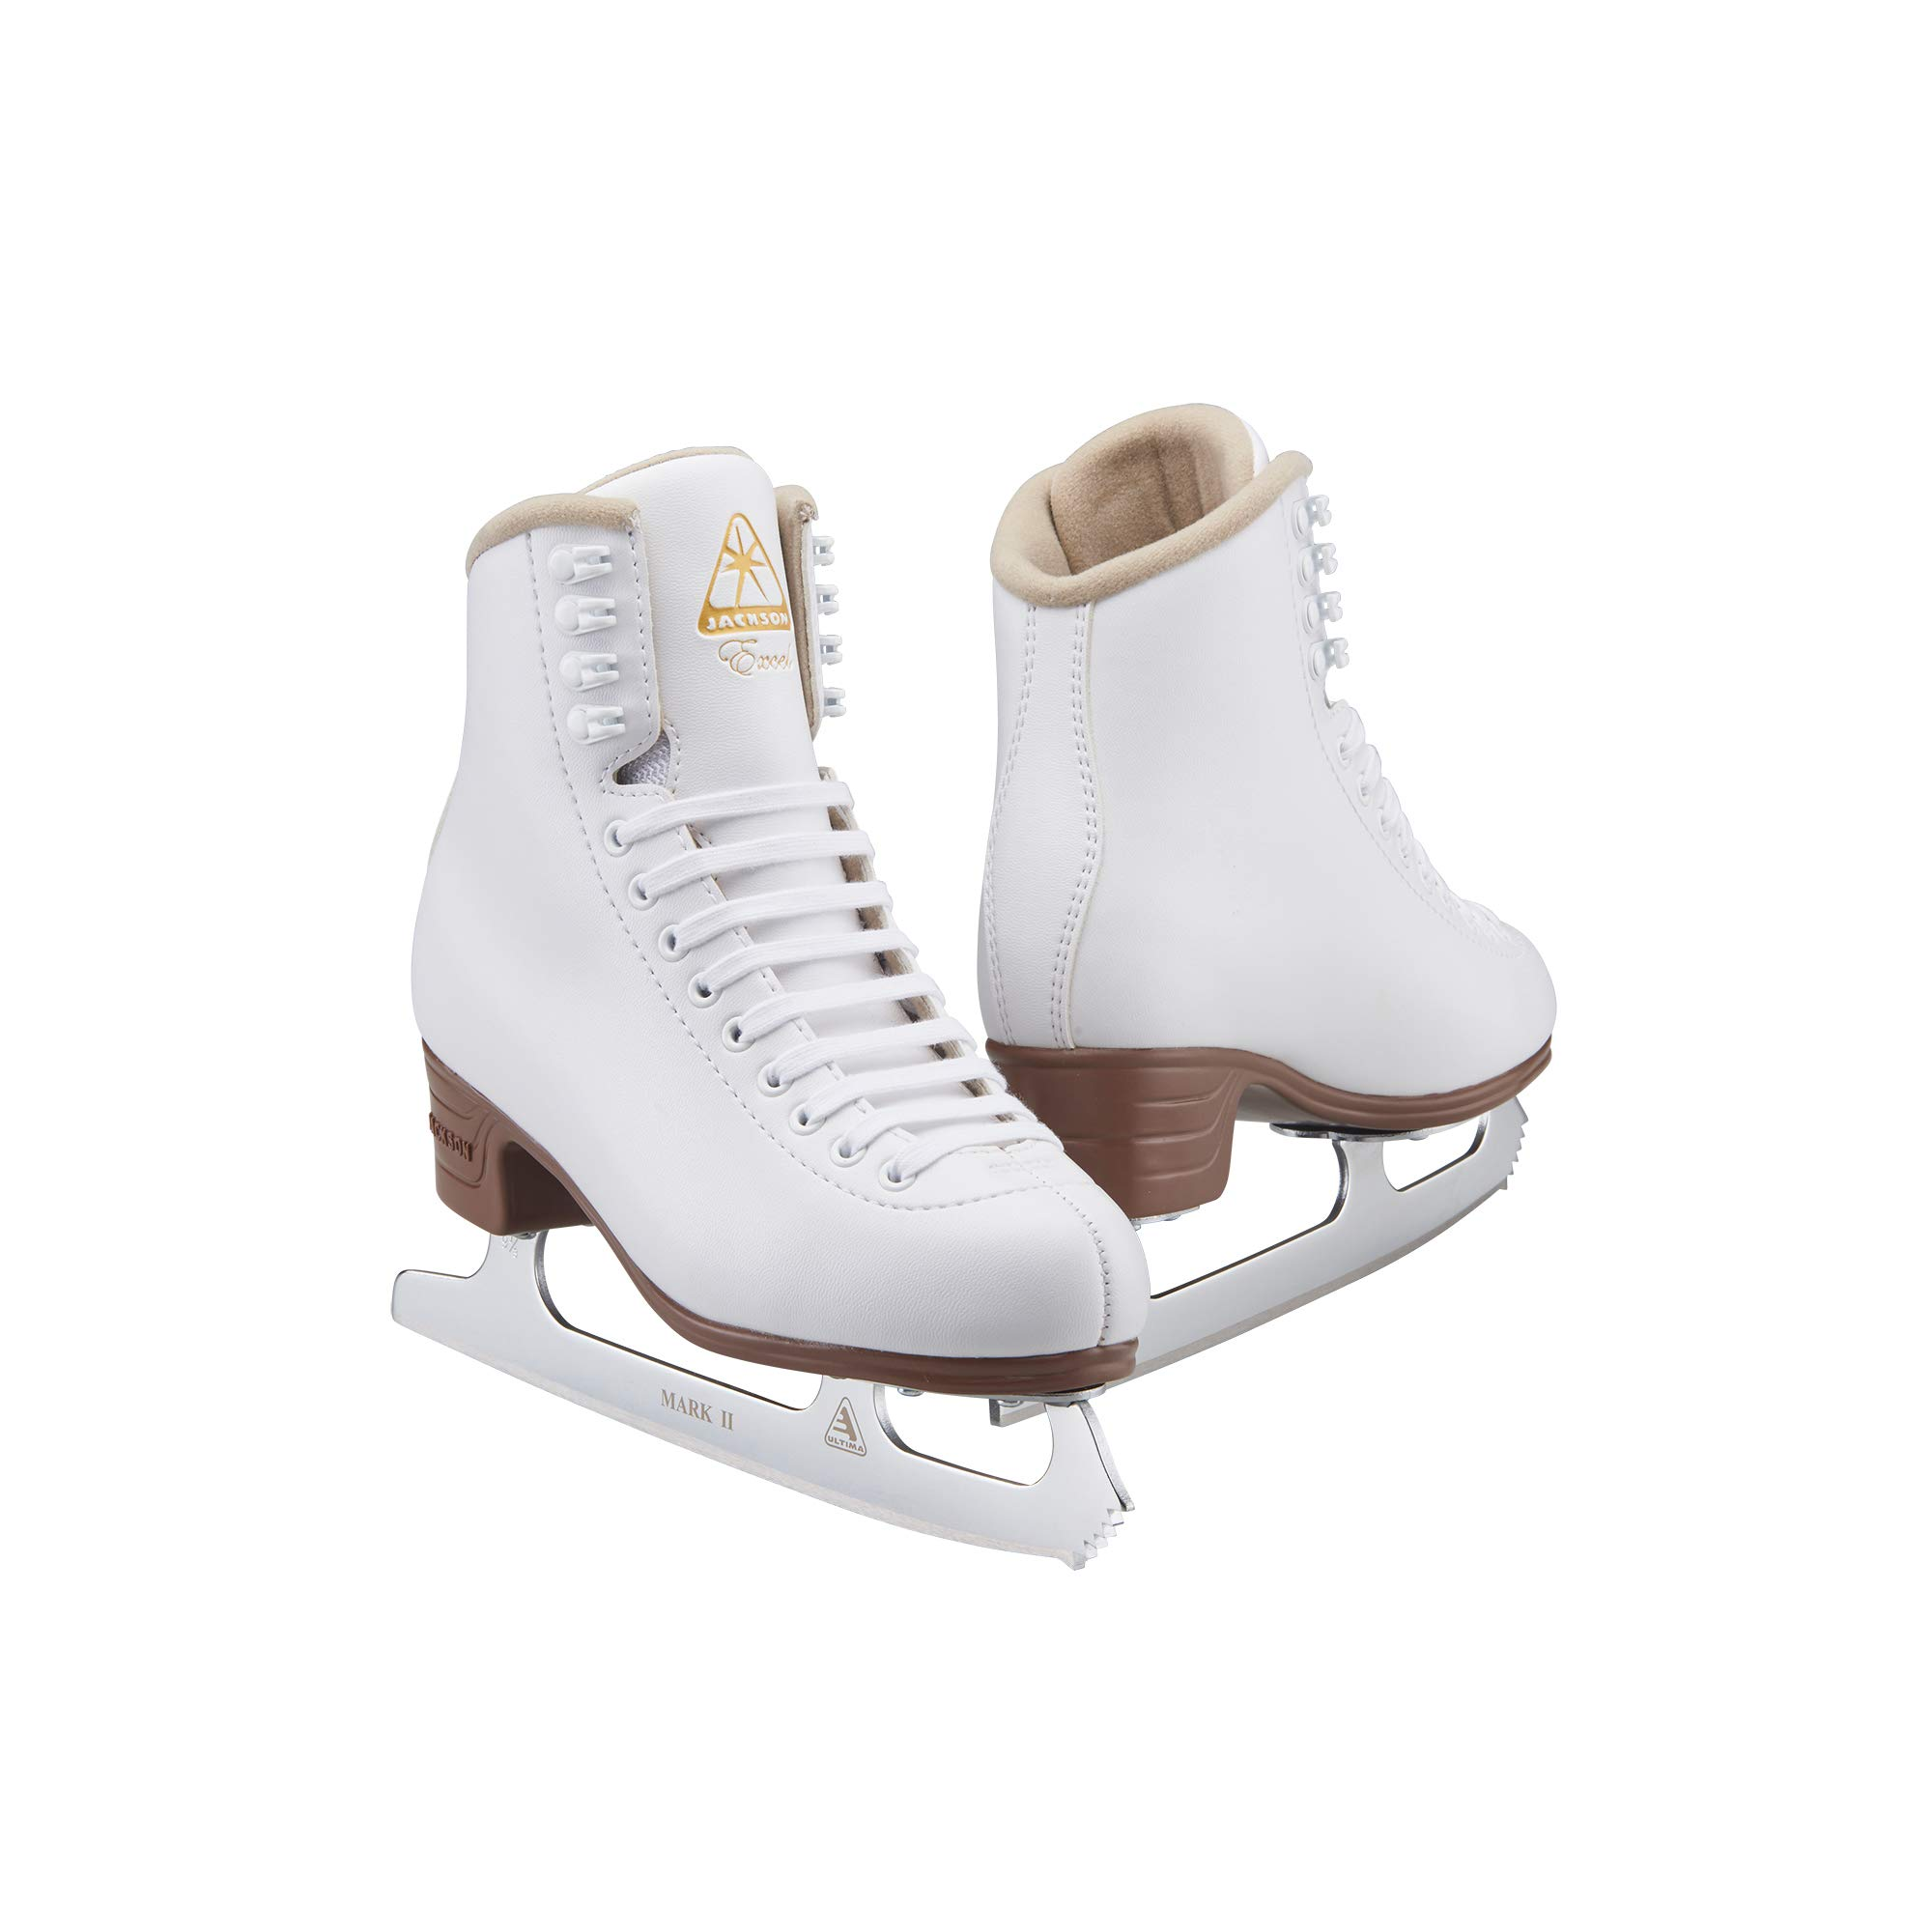 Jackson Ultima Excel Women's/Girls Figure Skate